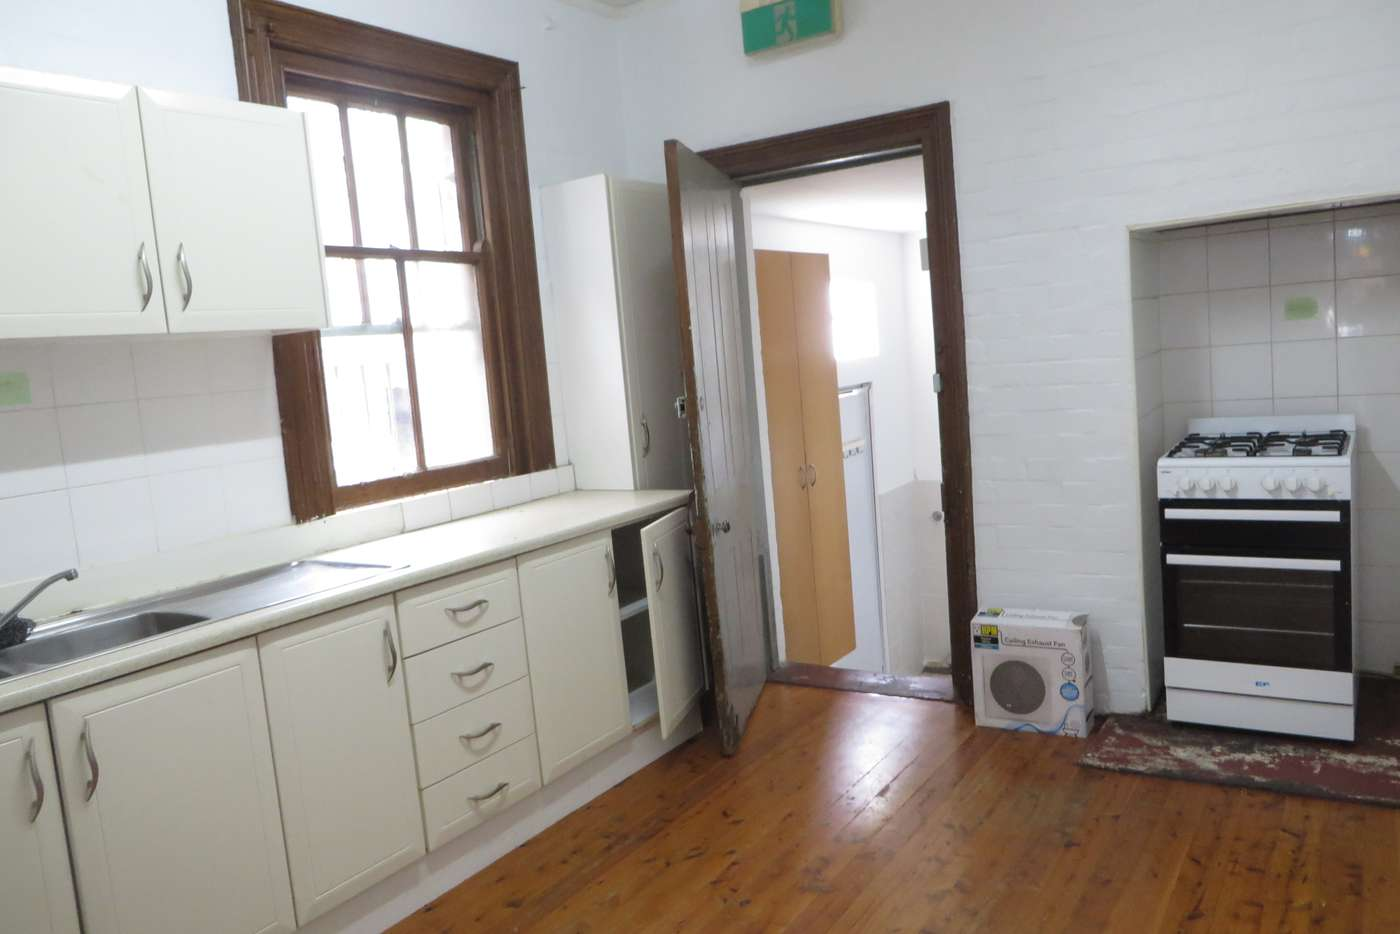 Sixth view of Homely house listing, 111 Commonwealth Street, Surry Hills NSW 2010